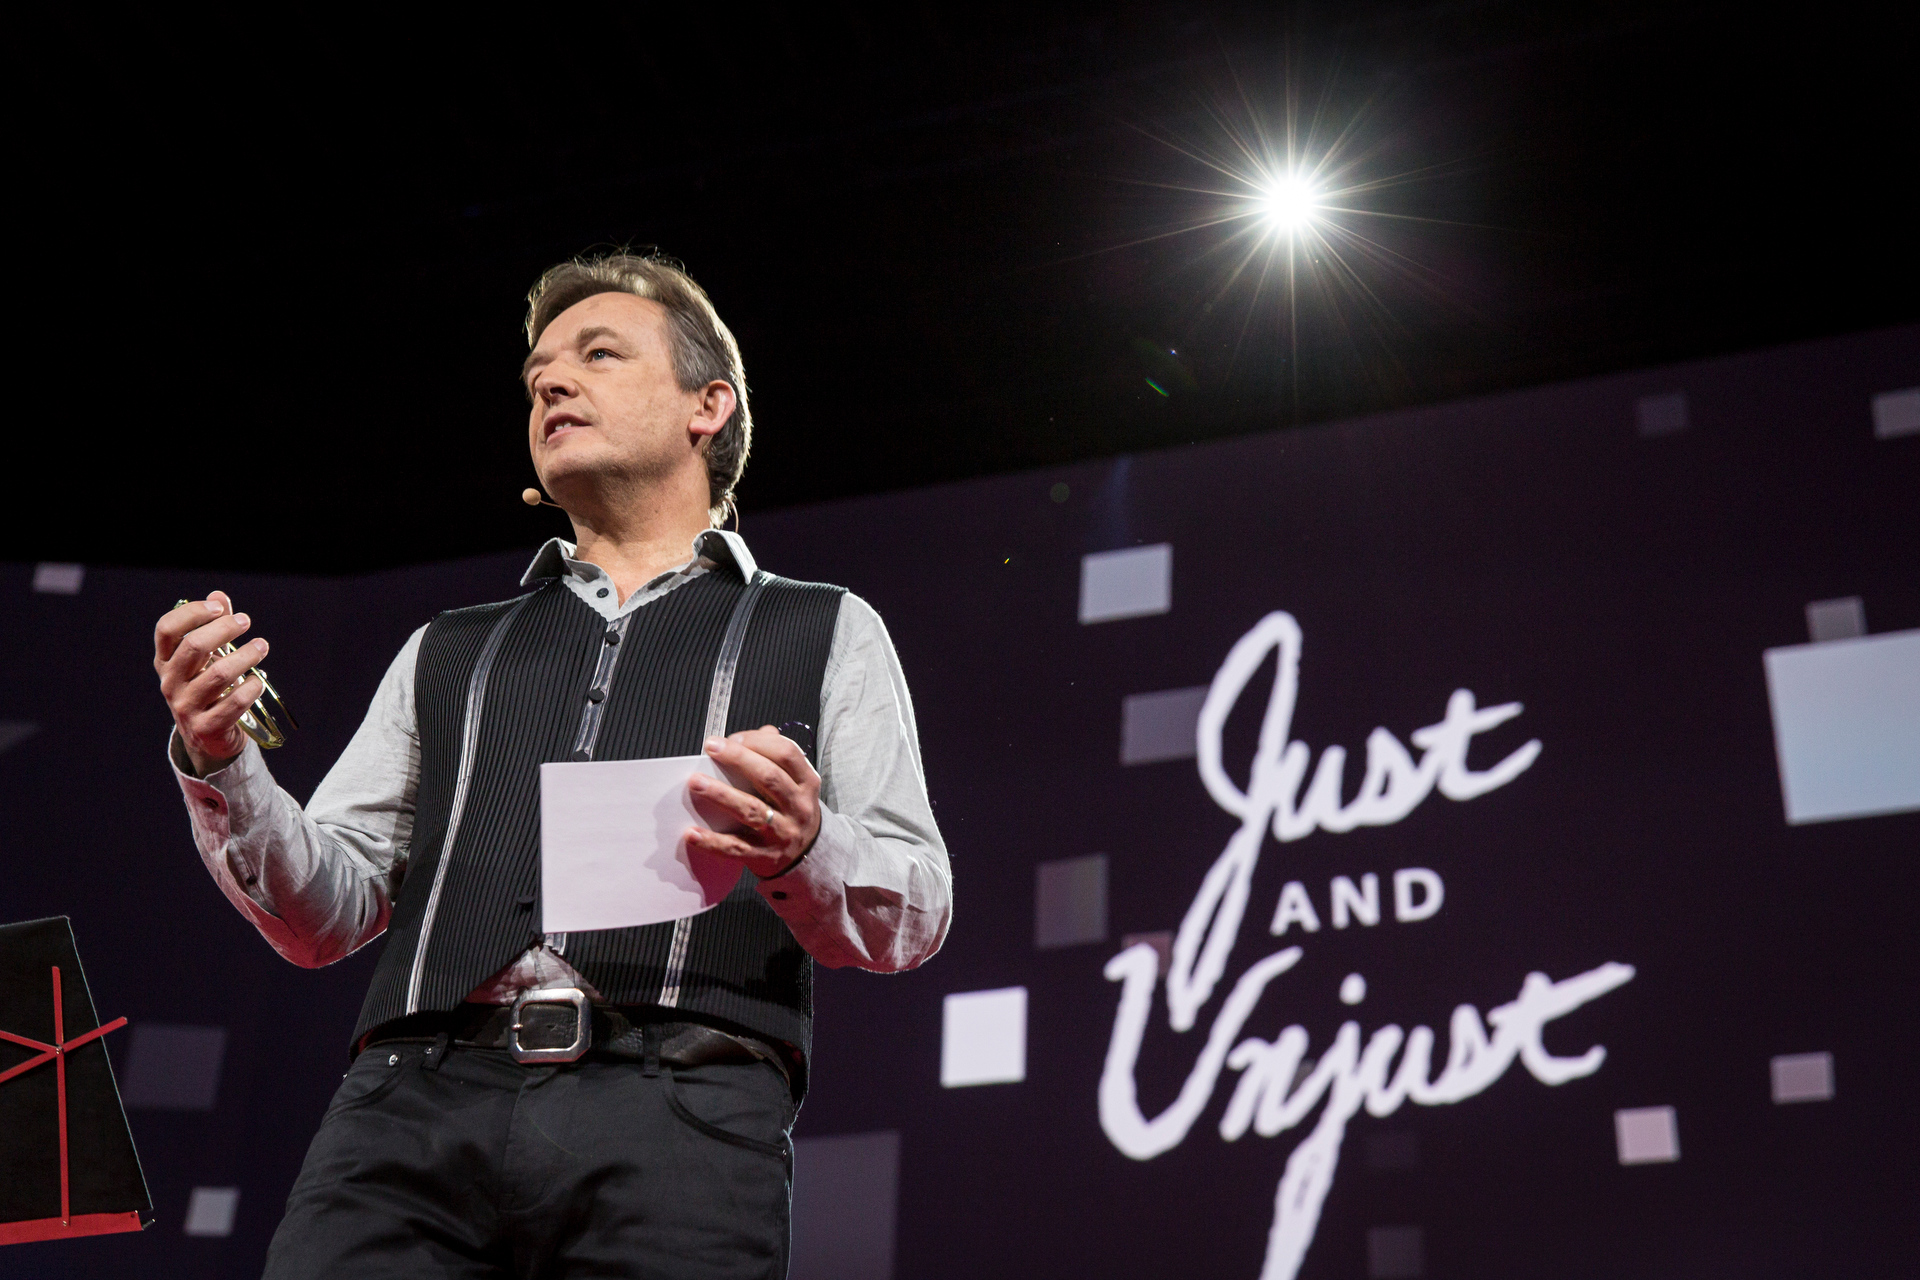 """Chris Anderson, TED's Curator, hosts a chilling session, """"Just and Unjust."""" Read a full recap of it. Bret Hartman/TED http://blog.ted.com/just-and-unjust-a-recap-of-the-powerful-talks-of-session-9-at-ted2015/"""